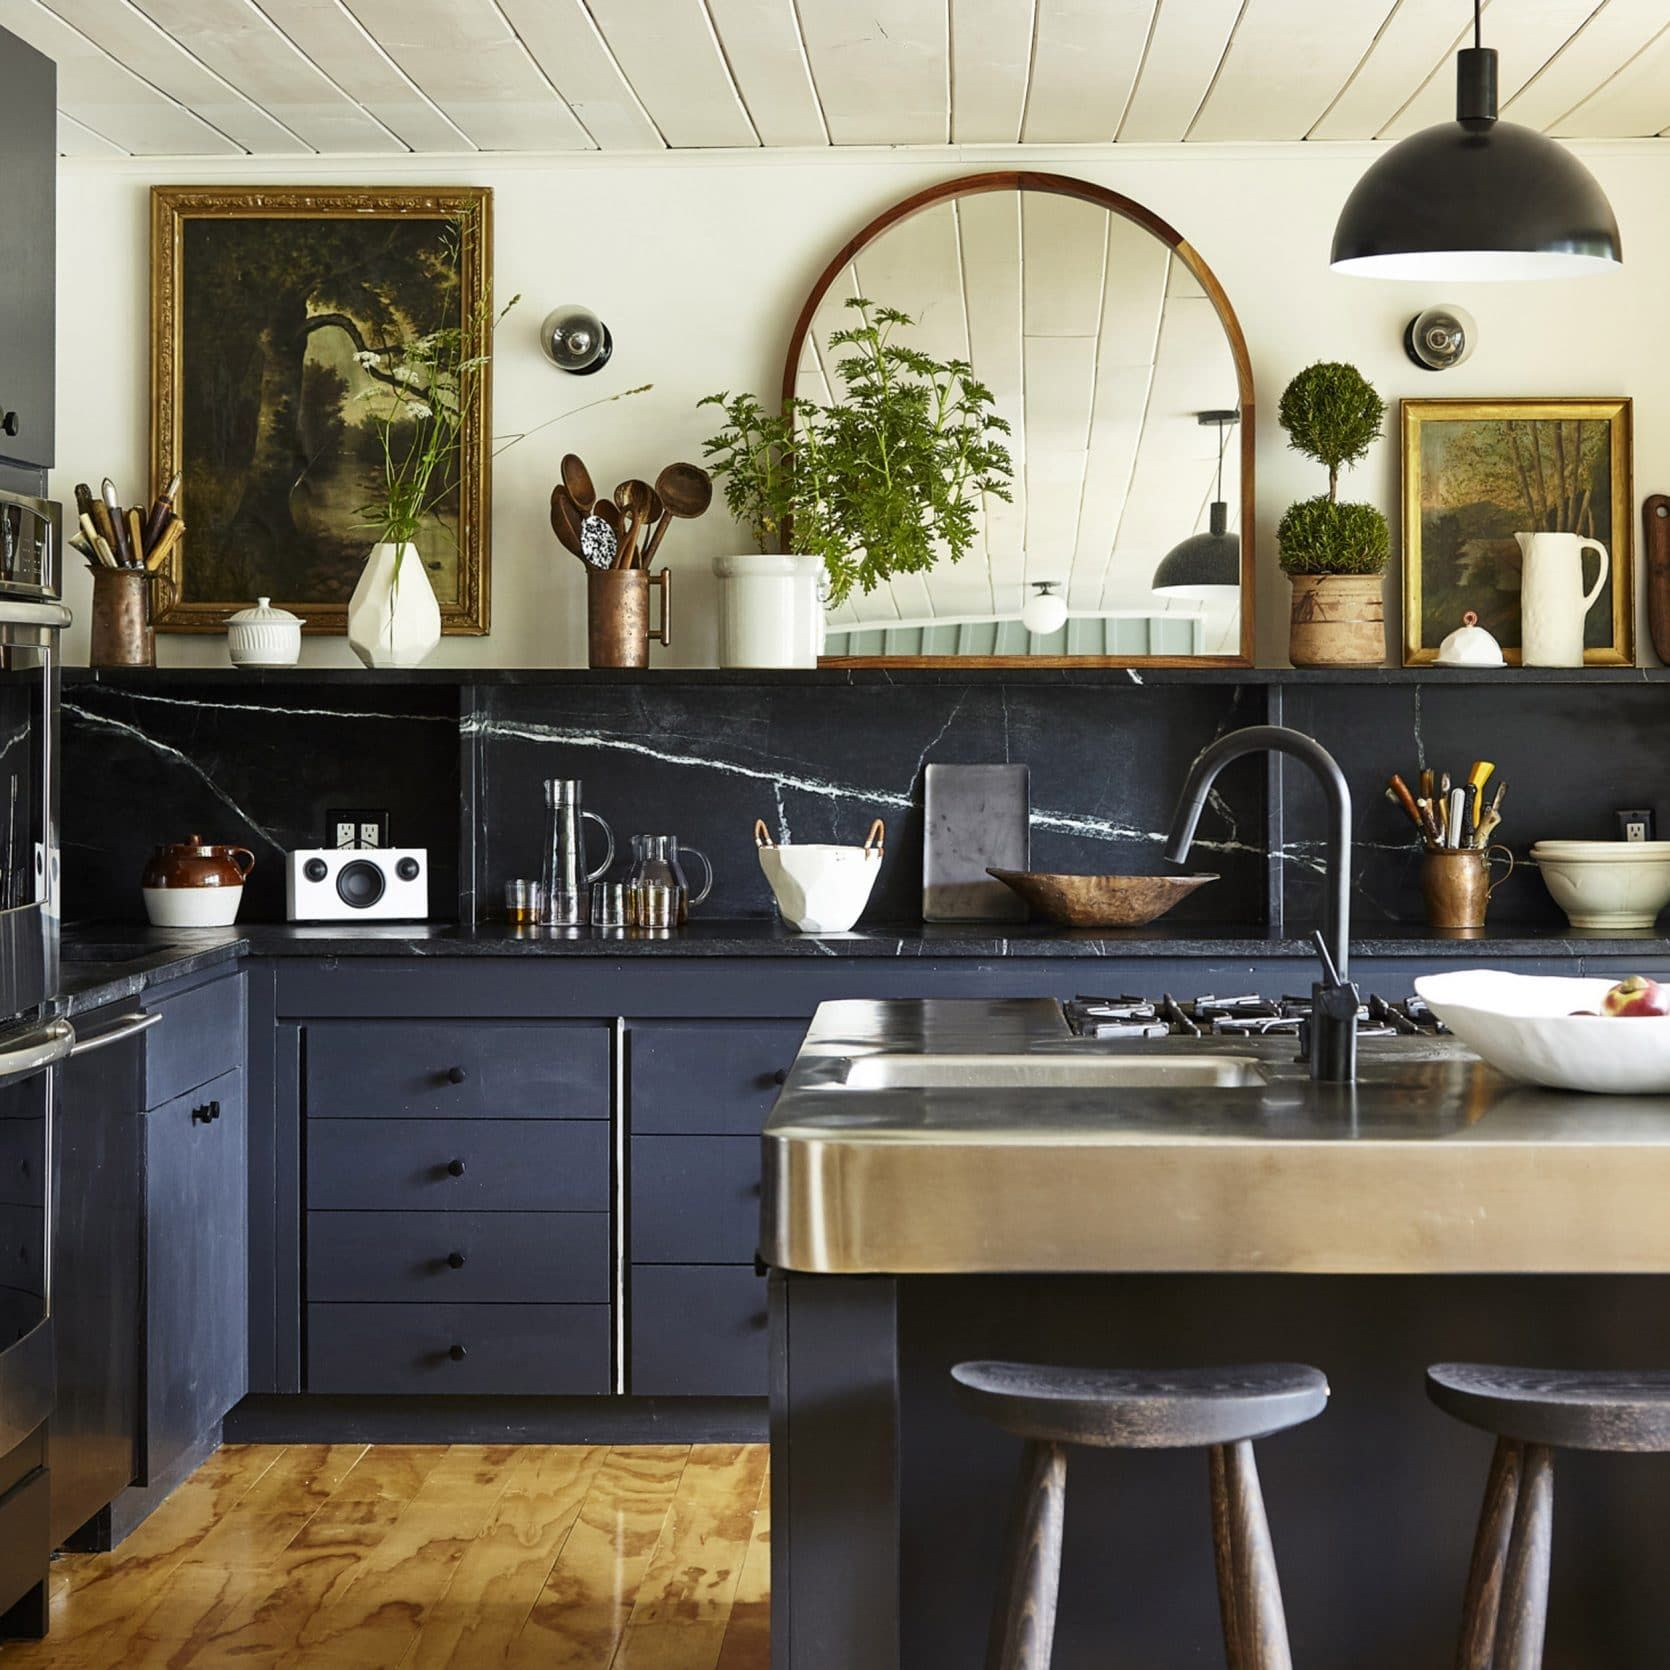 2019 S Biggest Design Trends Which Ones Have The Most Lasting